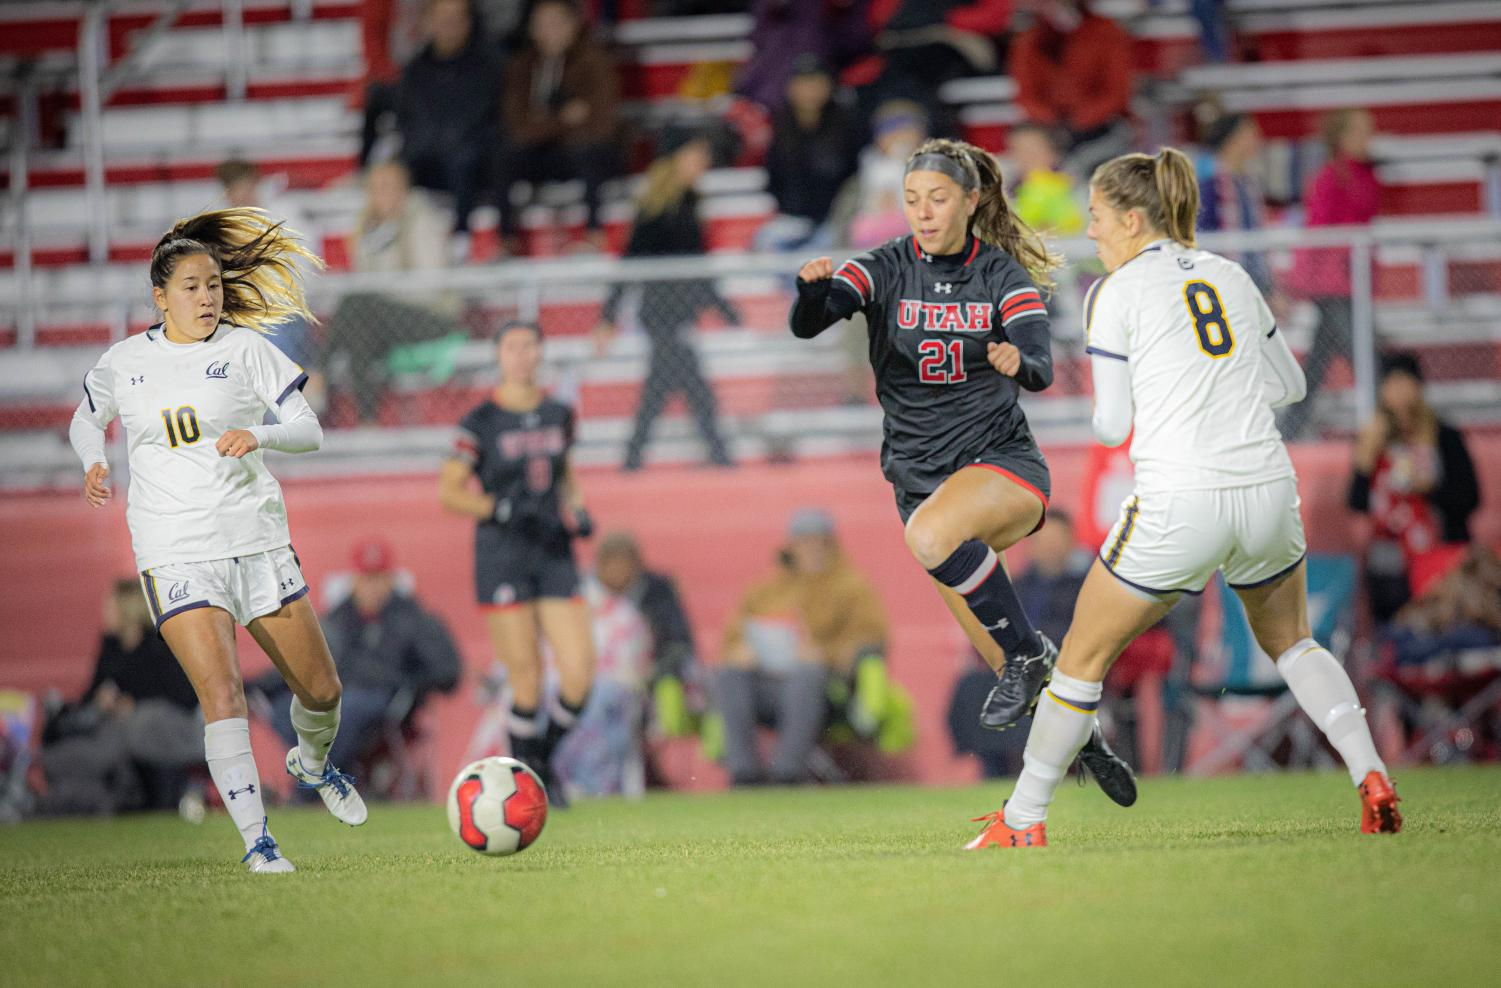 IRELAND DUNN (21) in University of Utah womens soccer vs. California Bears game at Ute Soccer Field in Salt Lake City, Utah on Thursday, Oct. 24, 2019(Photo by Cassandra Palor| The Daily Utah Chronicle)